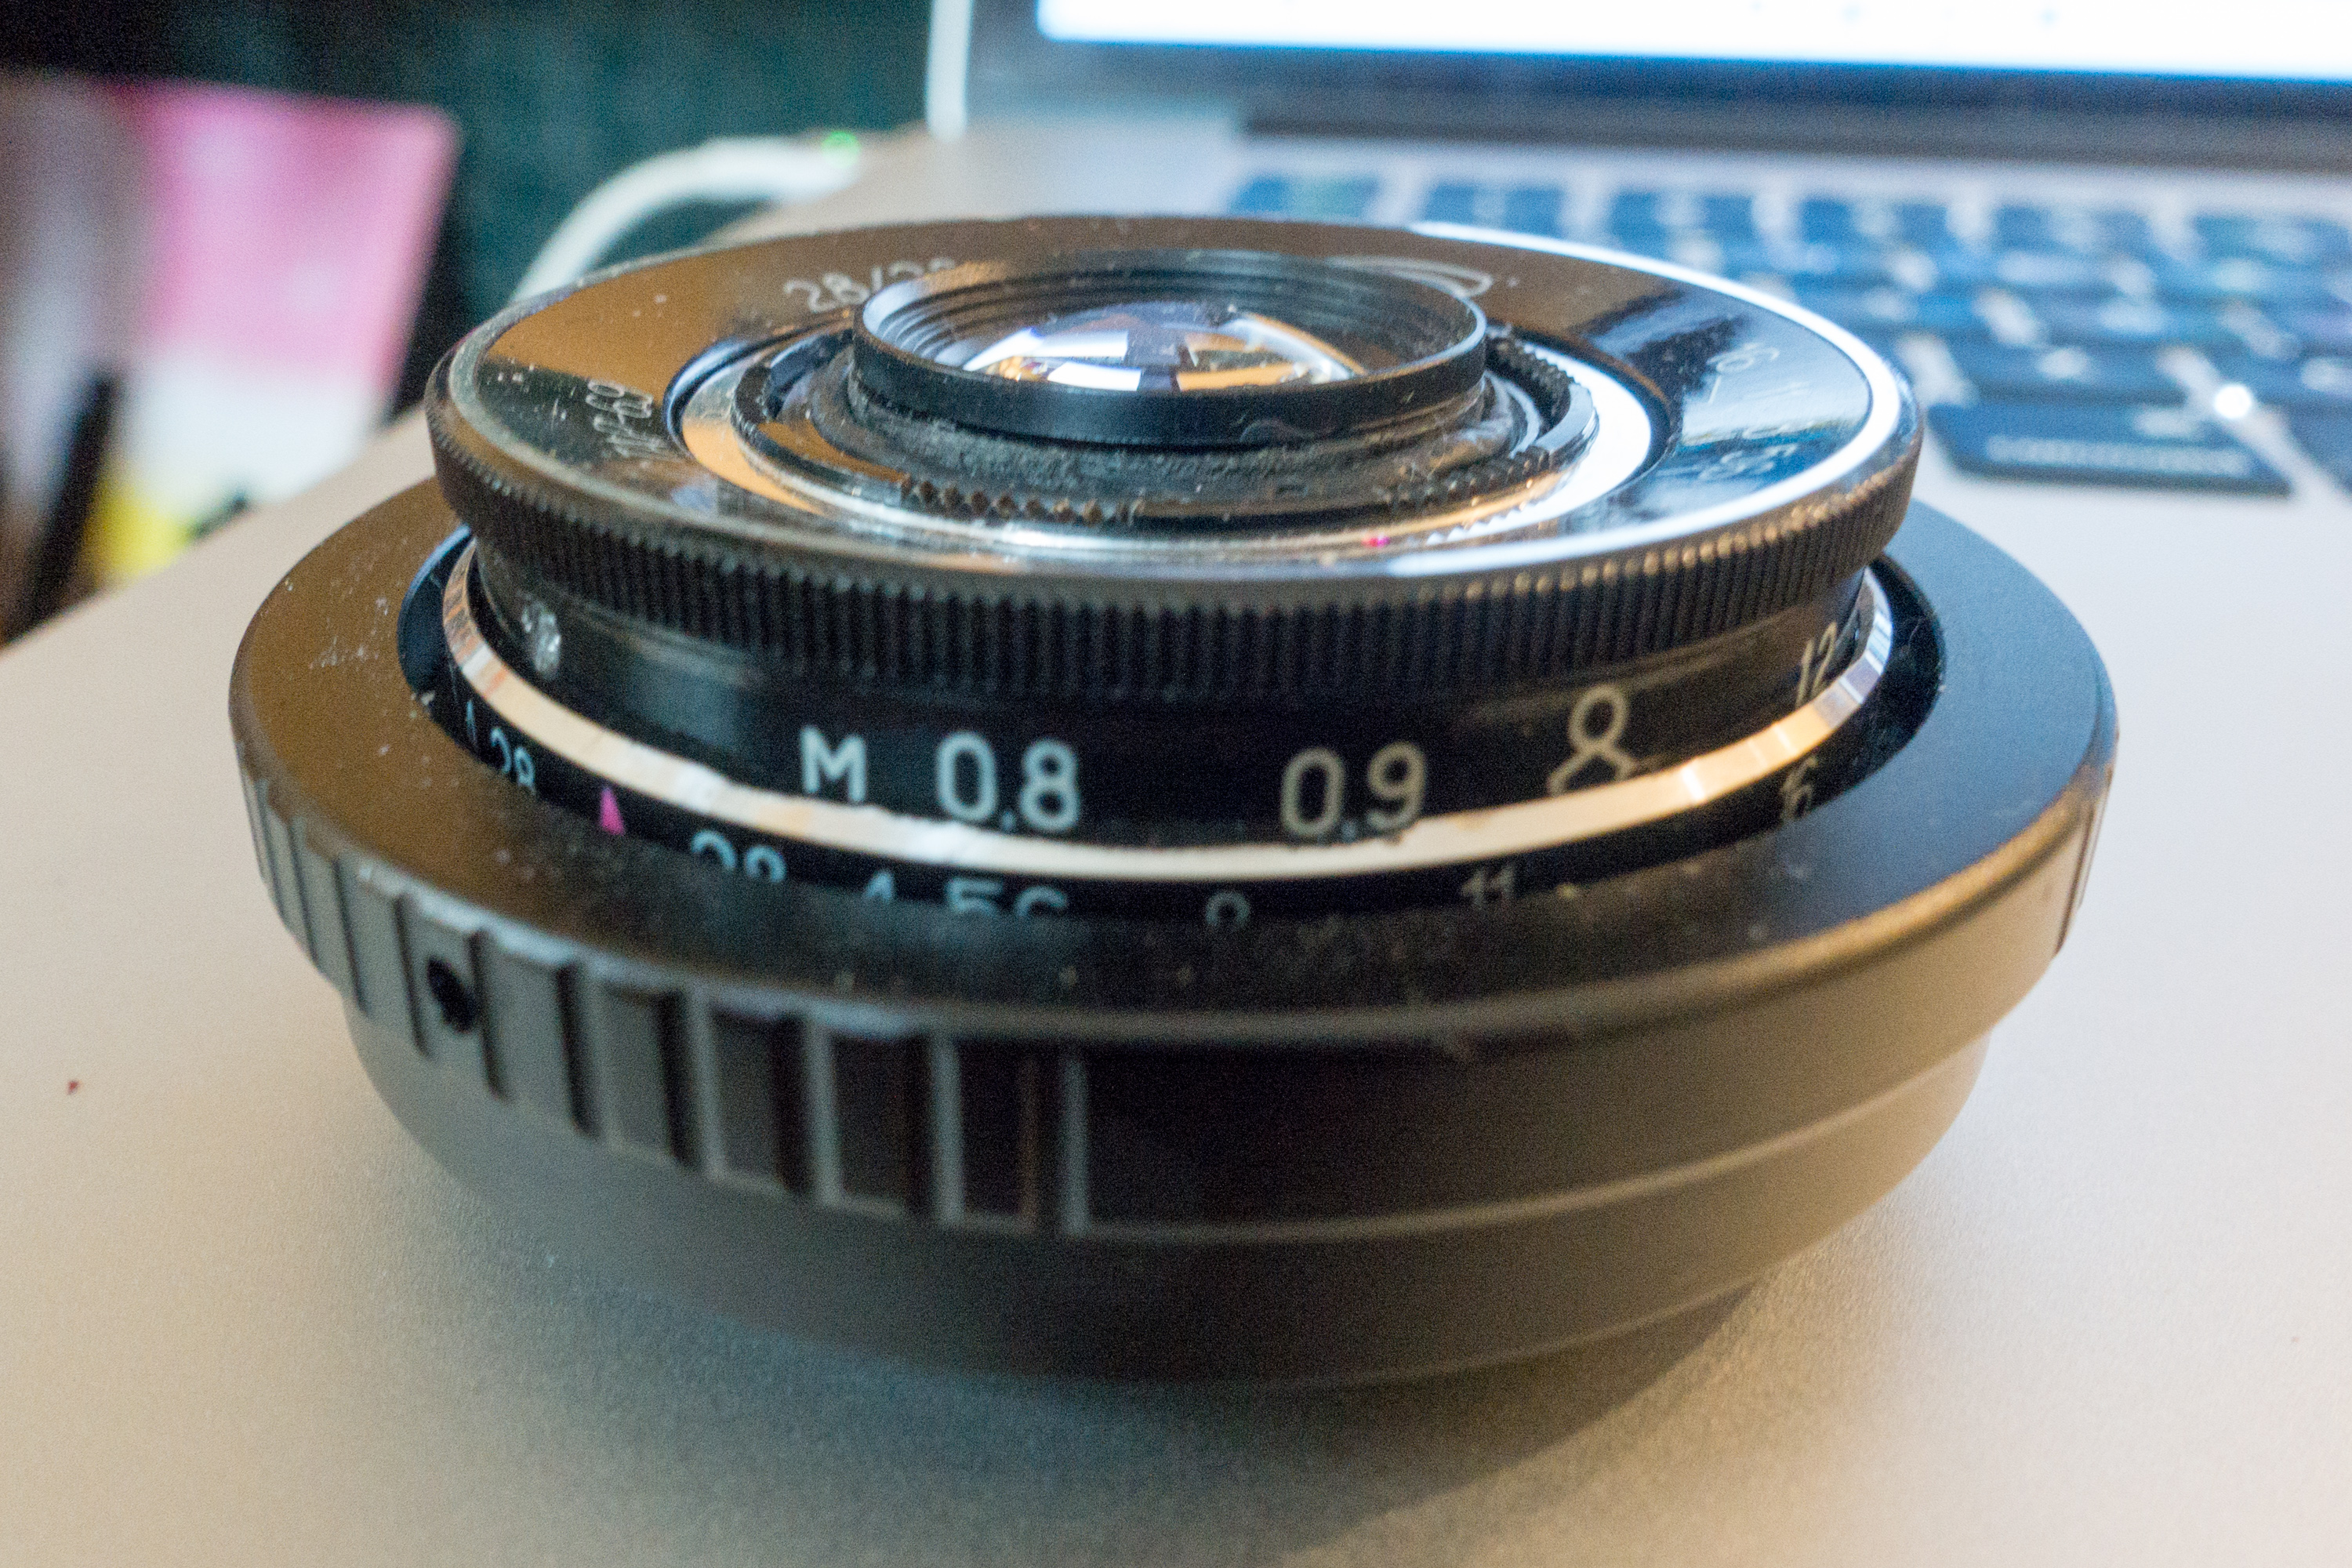 x-post from Adapted Lens Talk] Vintage Glass for X-Pro2: Fujifilm X